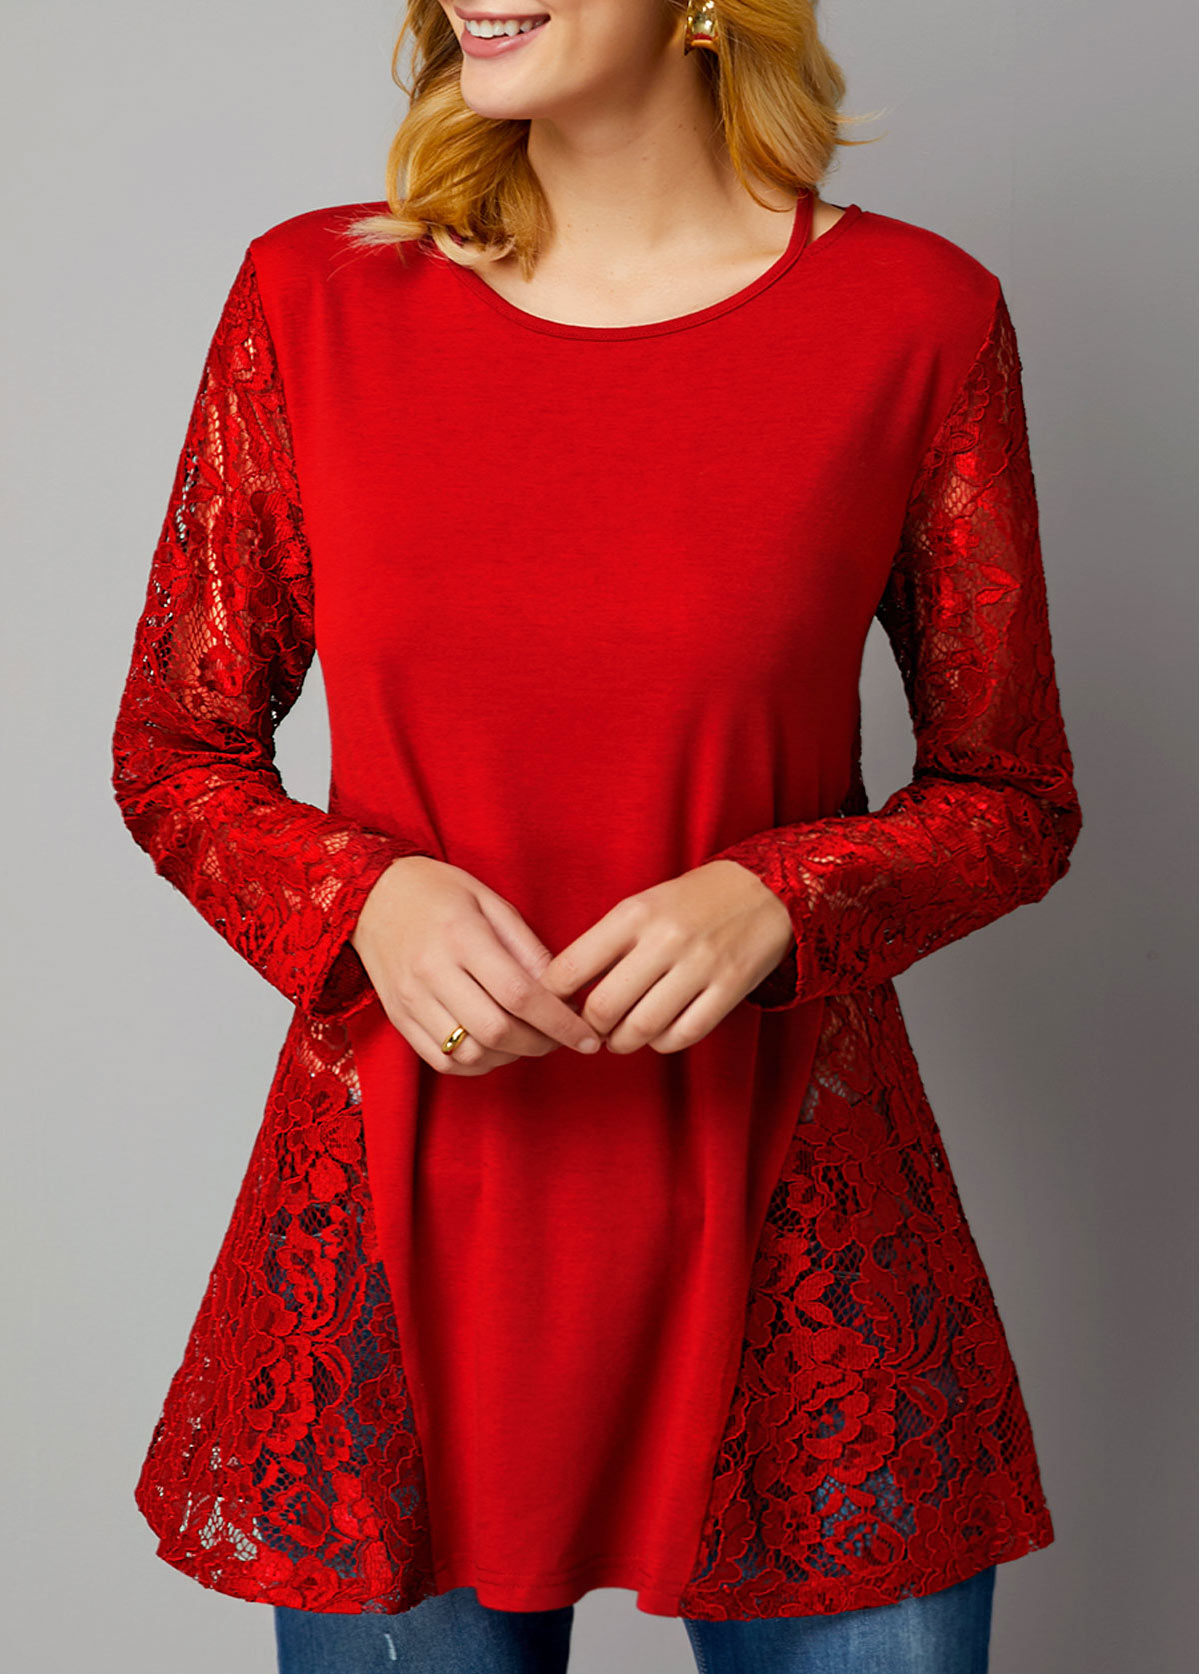 Lace Panel Long Sleeve Wine Red T Shirt